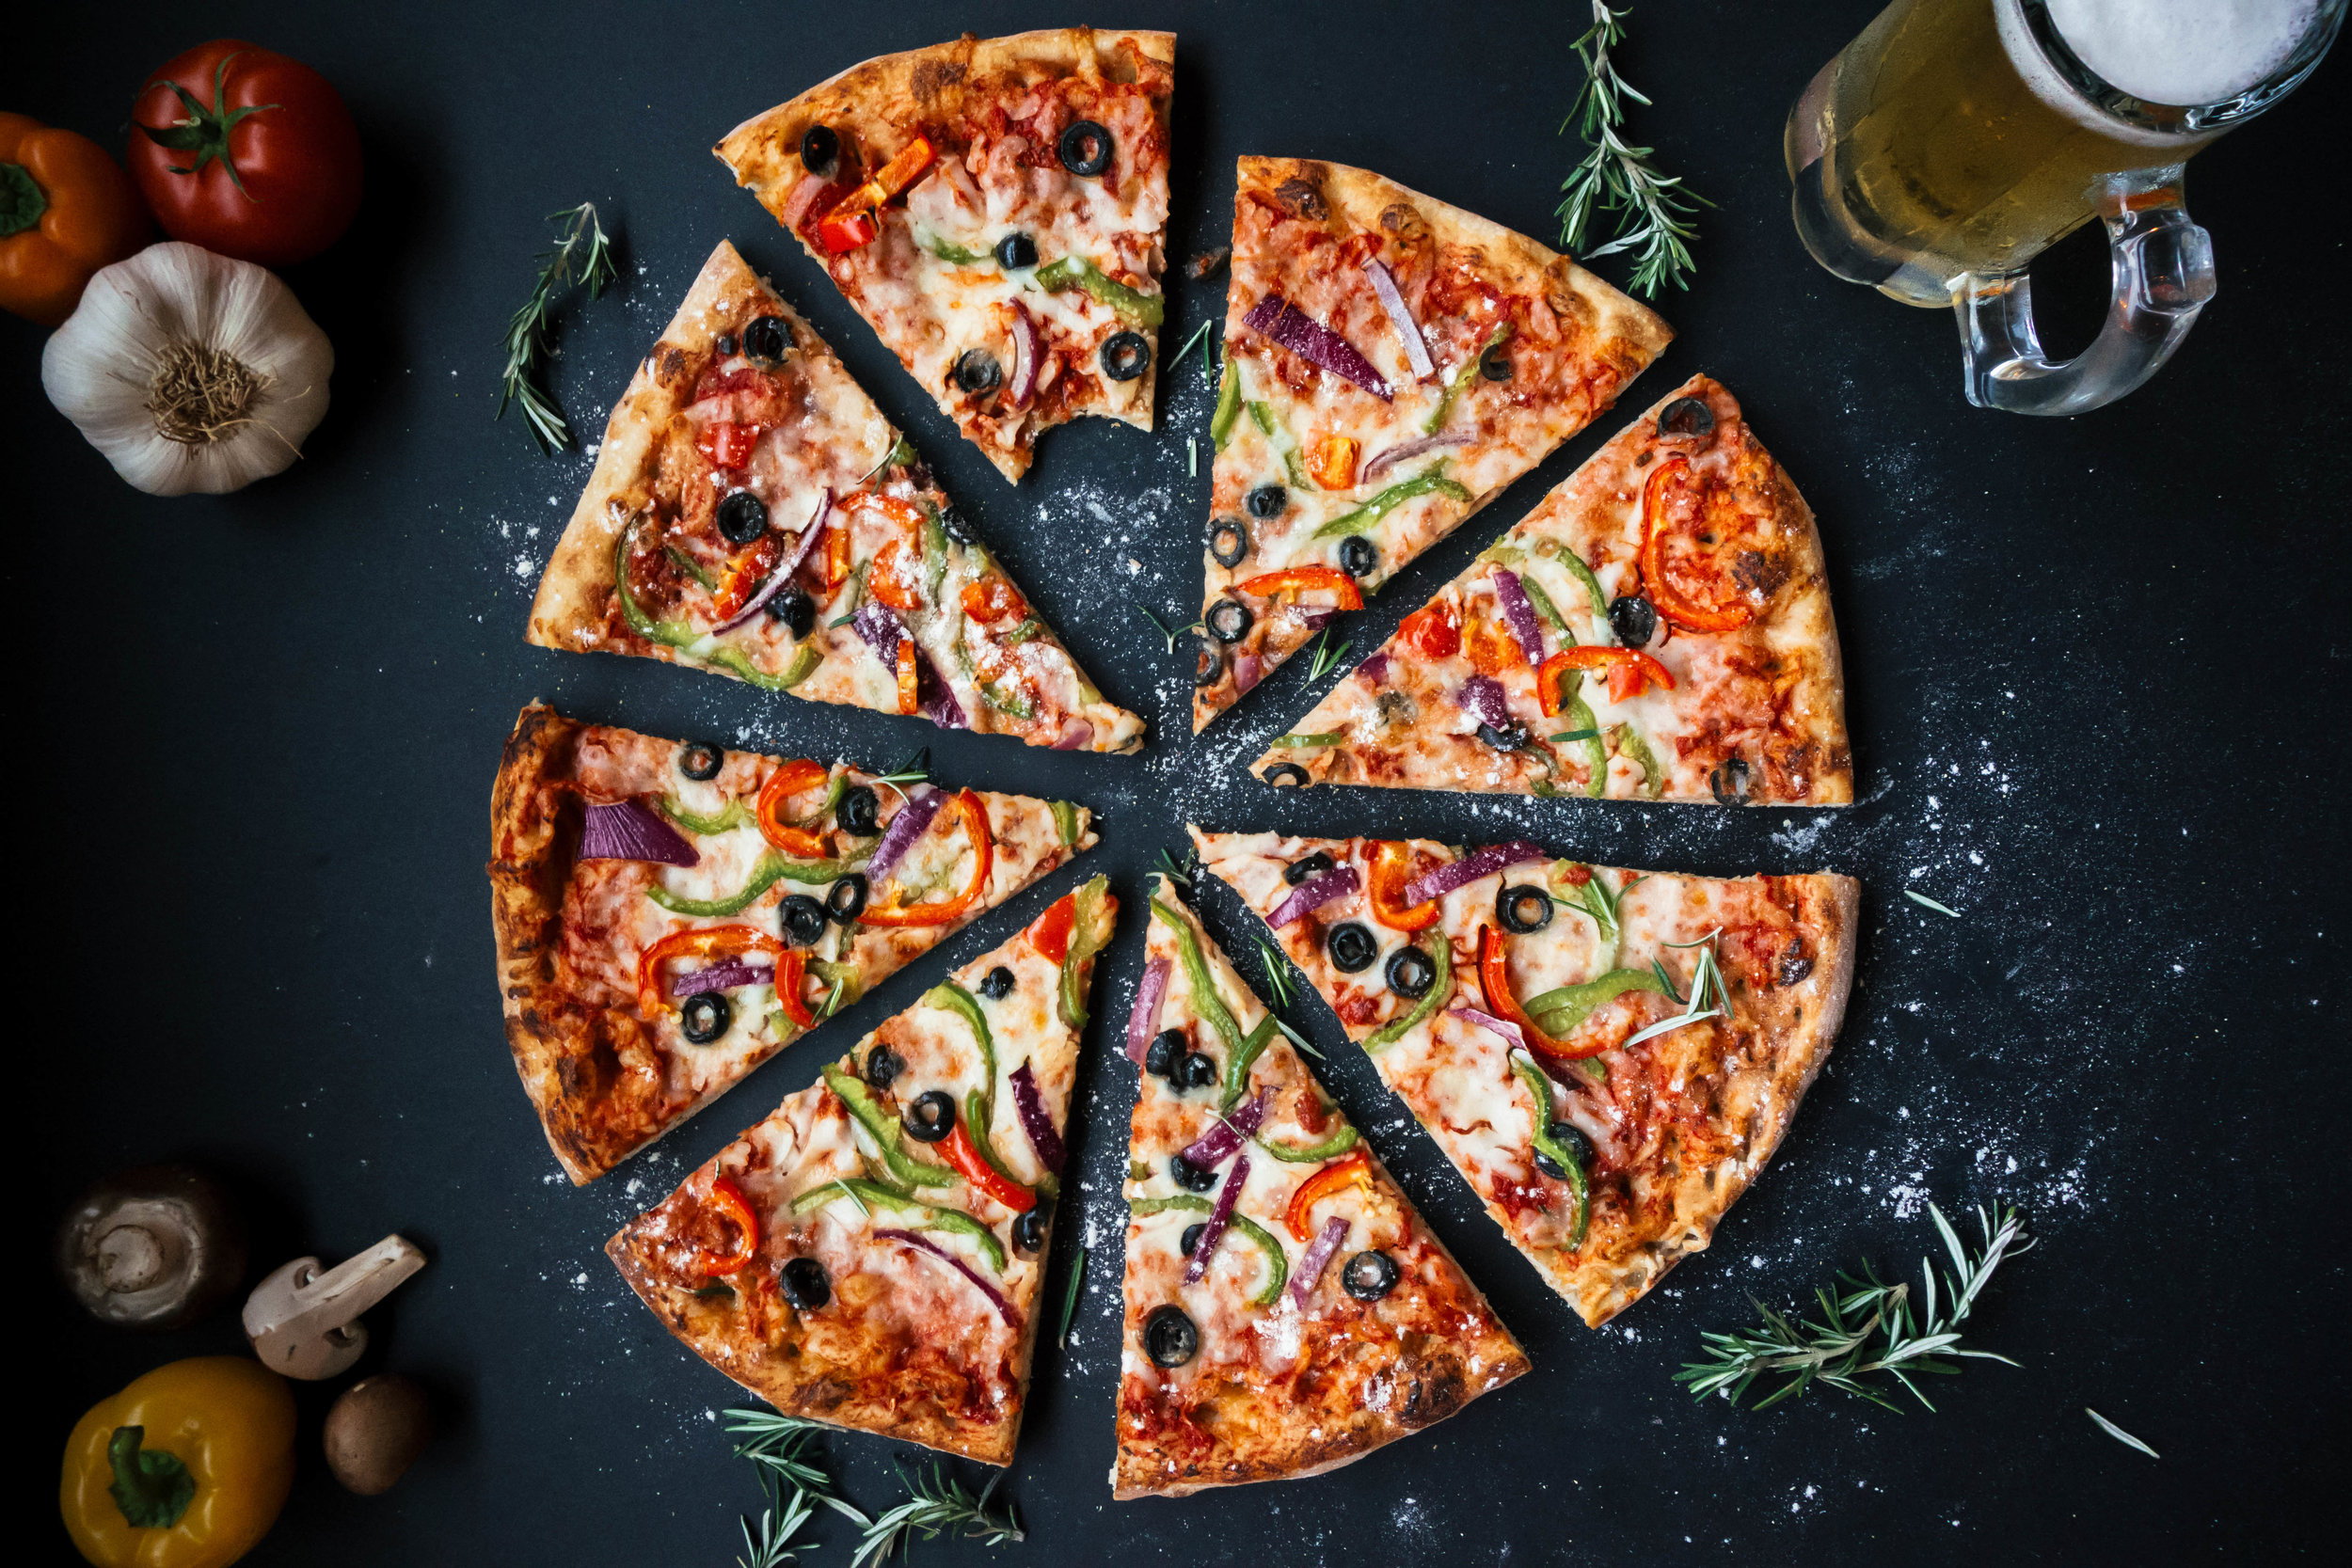 Van Go's Pizza - Easily a guide favorite,Van Go's Pizza specializes in artisan pizza from the very best.Chef Daniel Van Hamersfeld runs the kitchen – he was born and raised in Amsterdam and attended the prestigious St Hubertus Culinary Academy in the Netherlands from the age of 12.